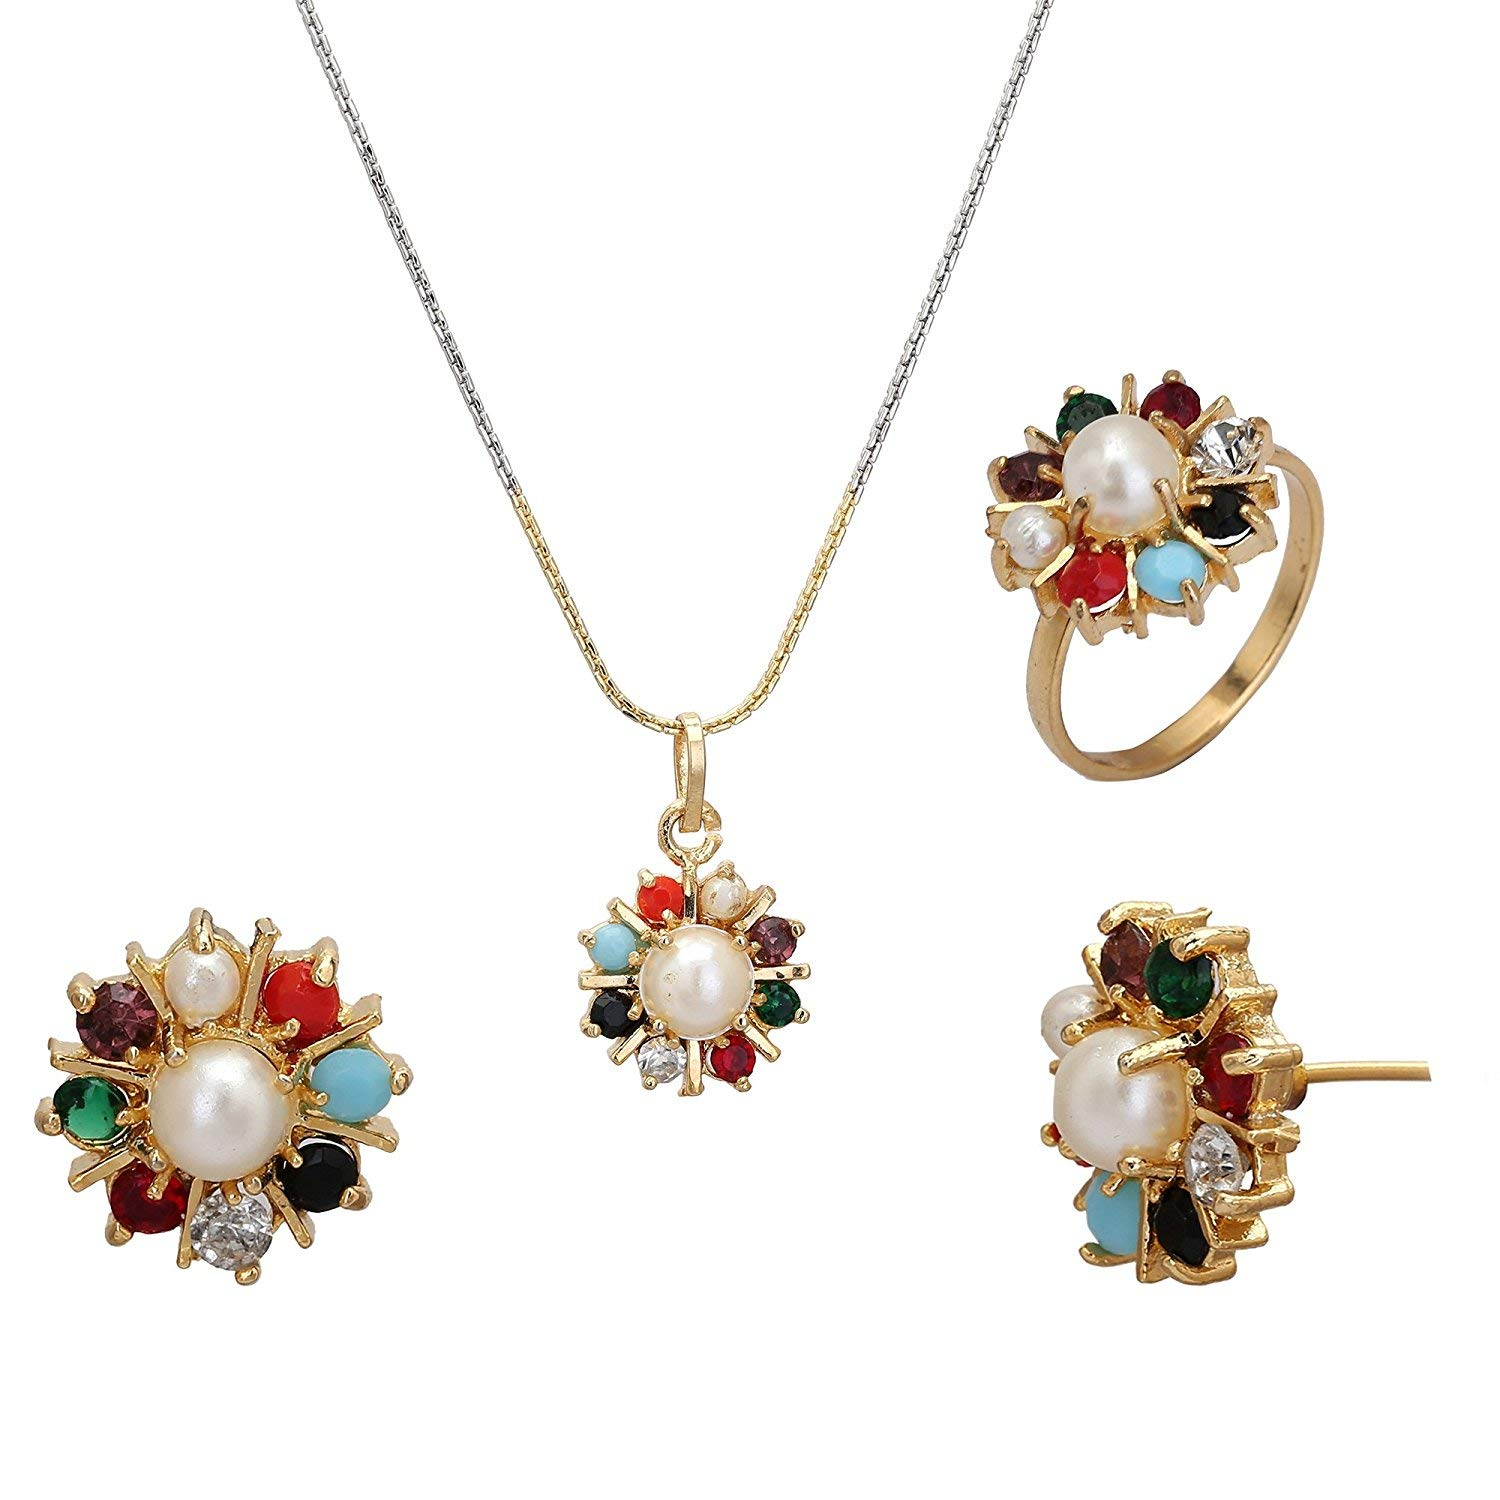 Buy Jsd Gold Plated Beautiful Flower Design Pendant Set With